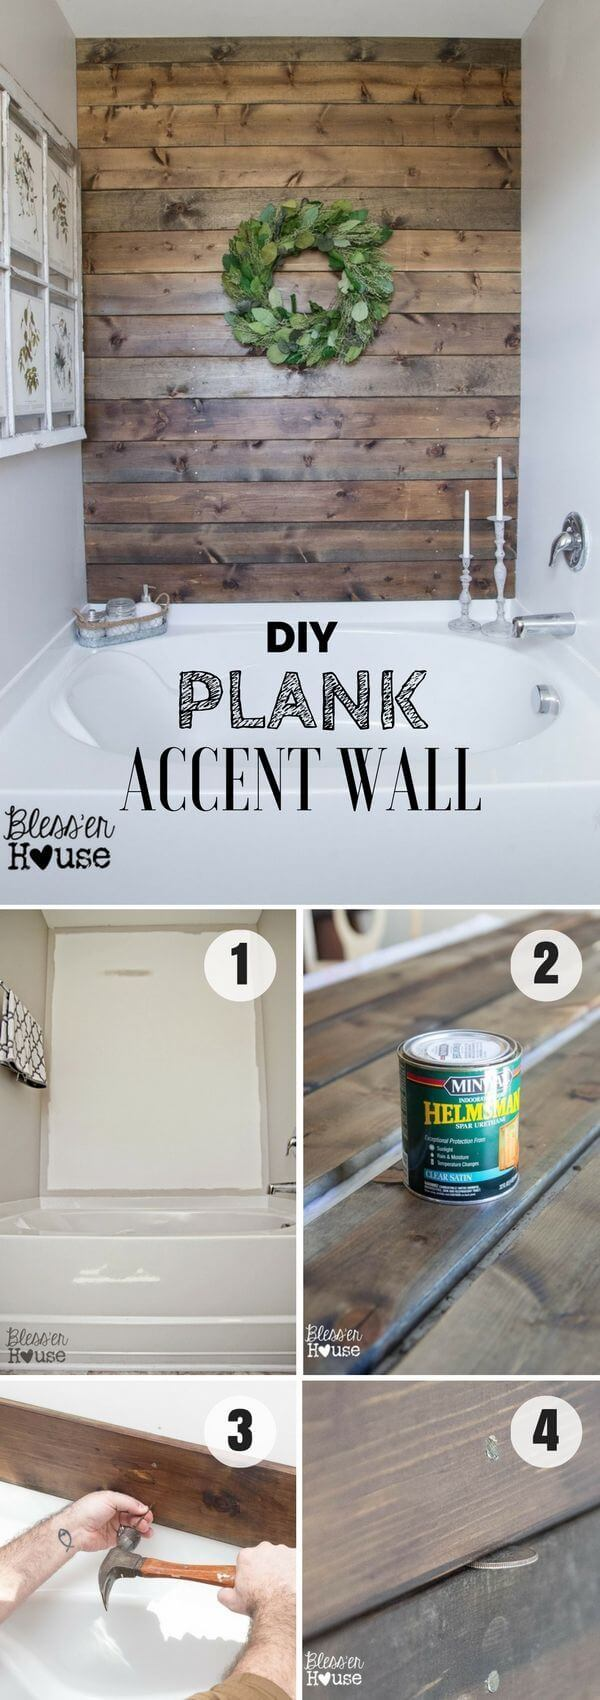 banos diy faciles 14